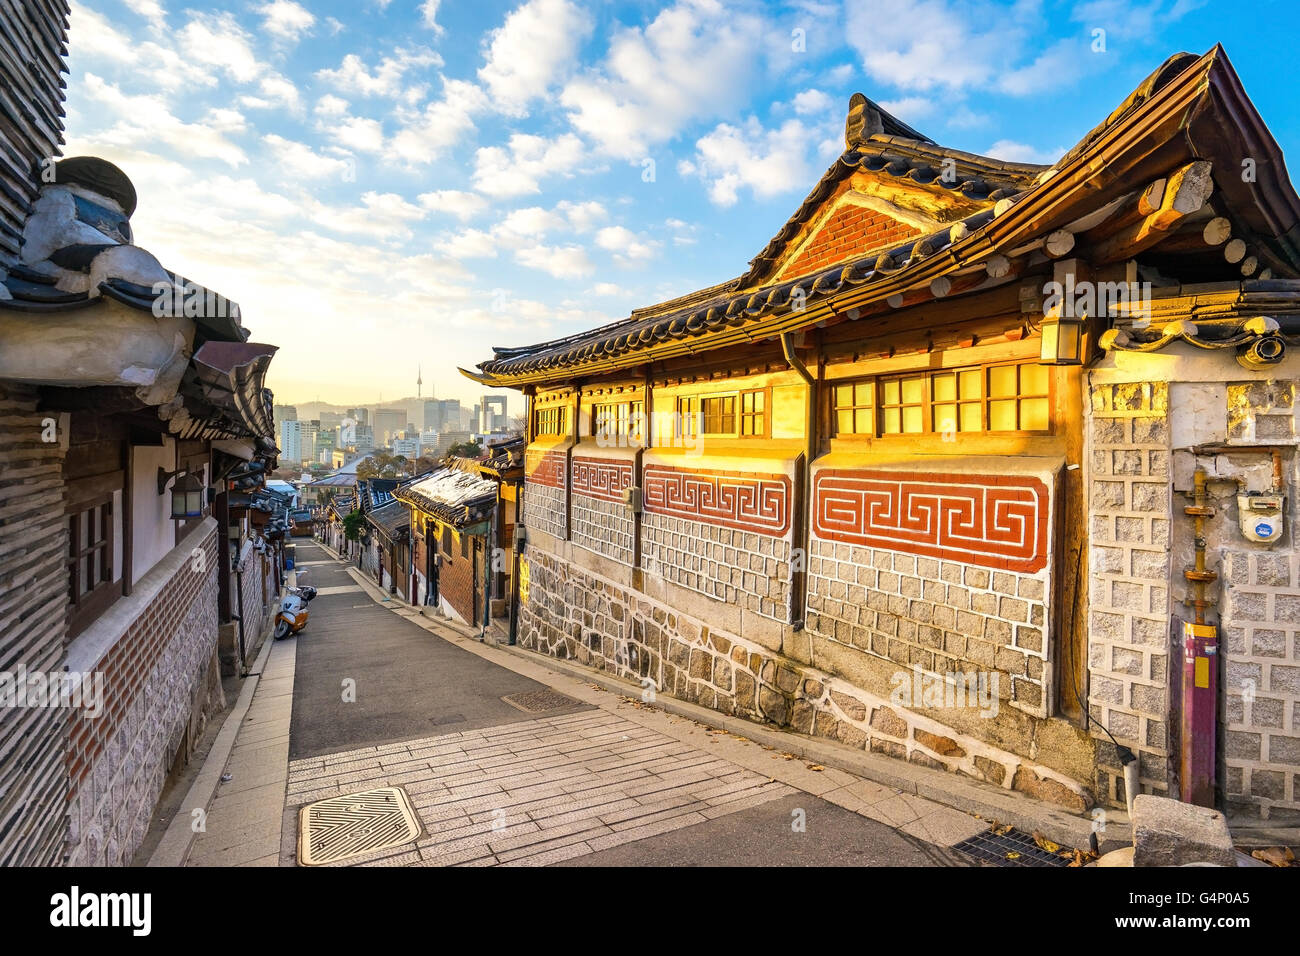 Bukchon the ancient village in Seoul, South Korea. - Stock Image